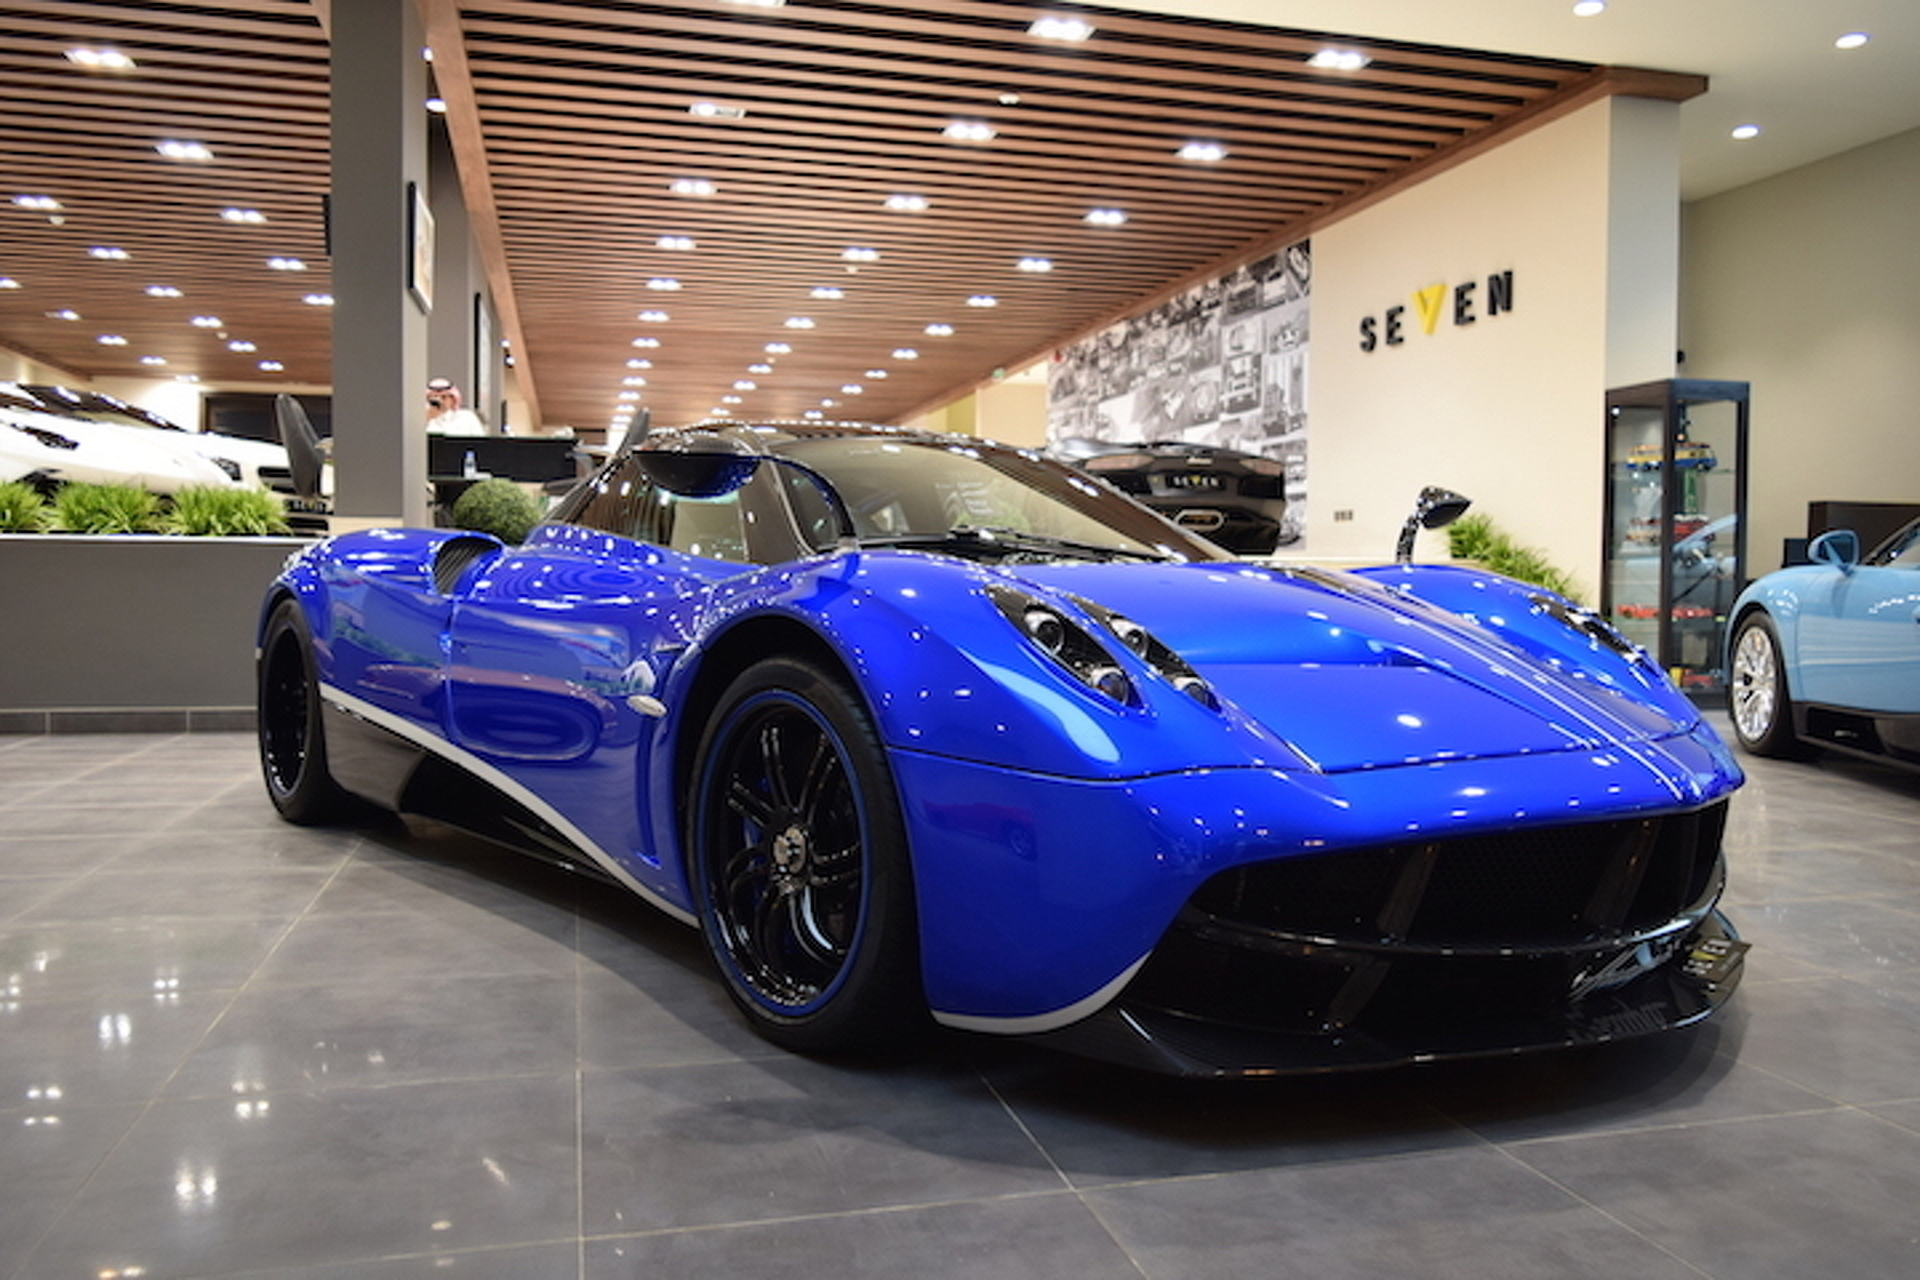 Pagani Huayra For Sale >> The Very First Pagani Huayra Ever Made Is For Sale